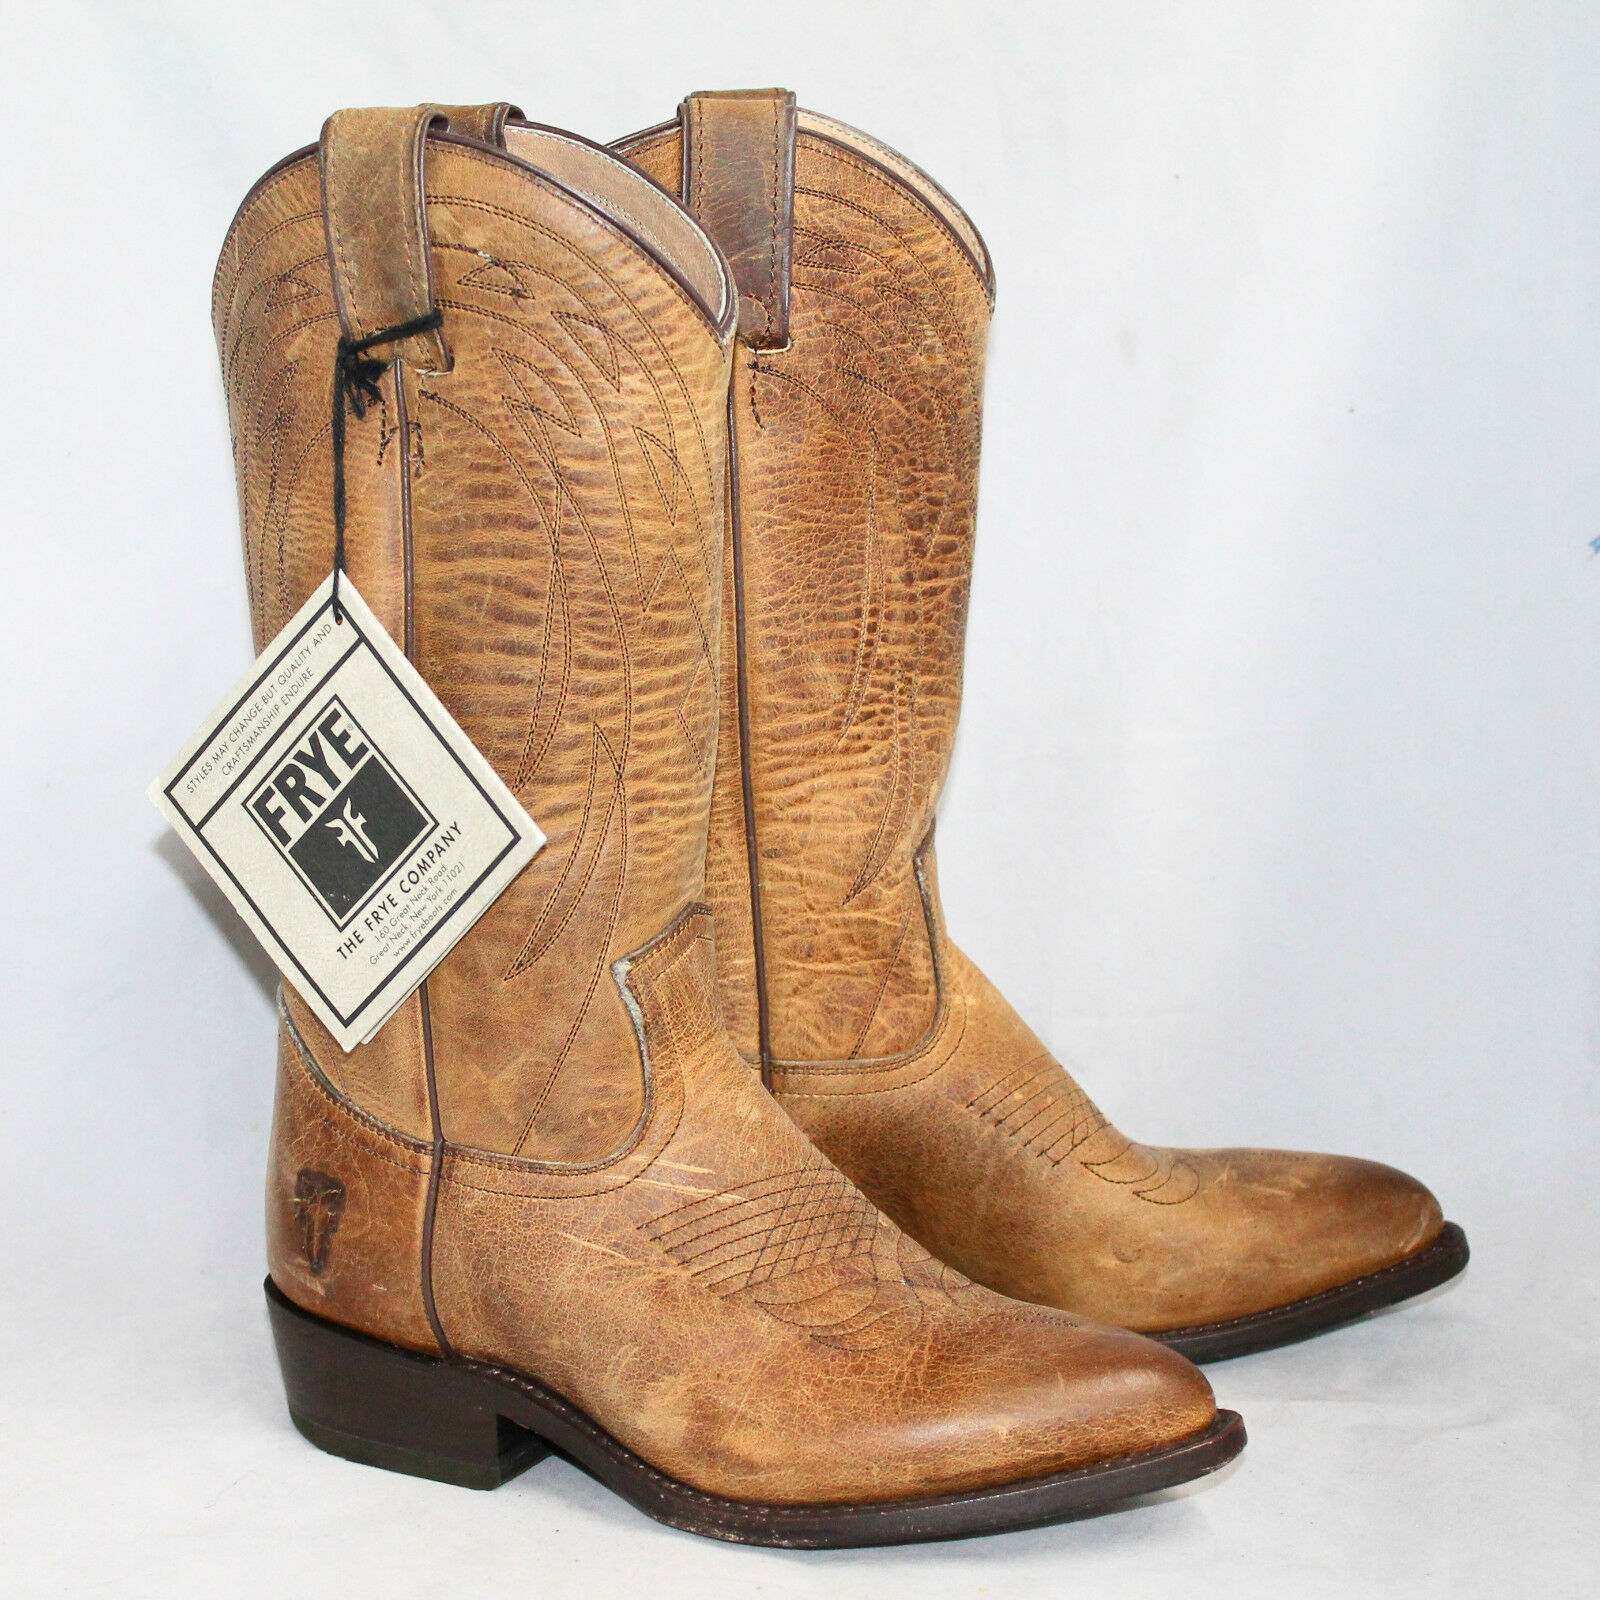 NWOB FRYE Billy Pull On Western Boot Boot Boot 77700 Wo's 6B Brown Distressed Leather  298 ece7af